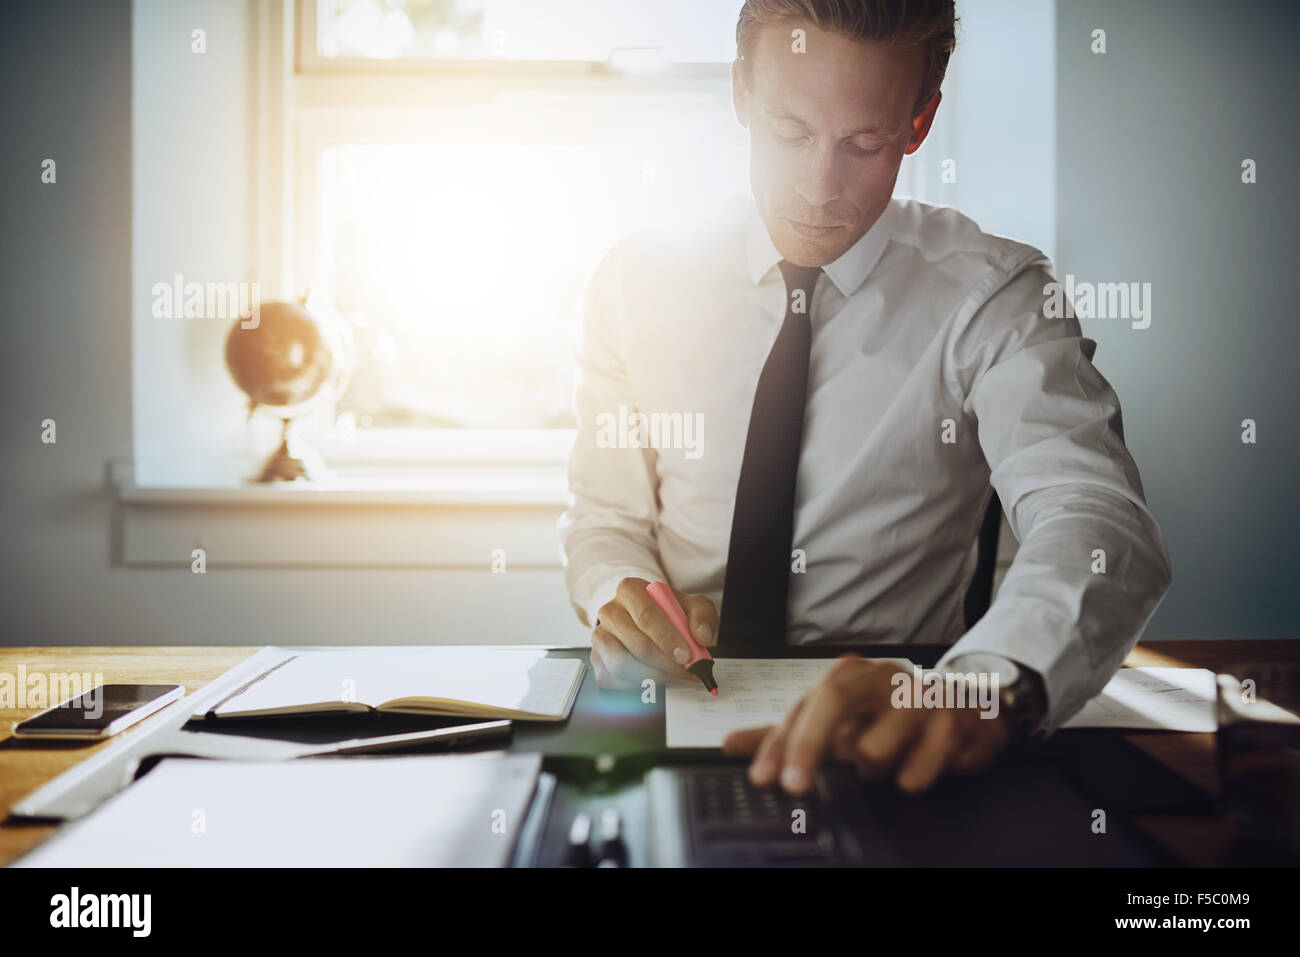 Executive business man working on accounts while being concentrated and serious, wearing white shirt and tie - Stock Image